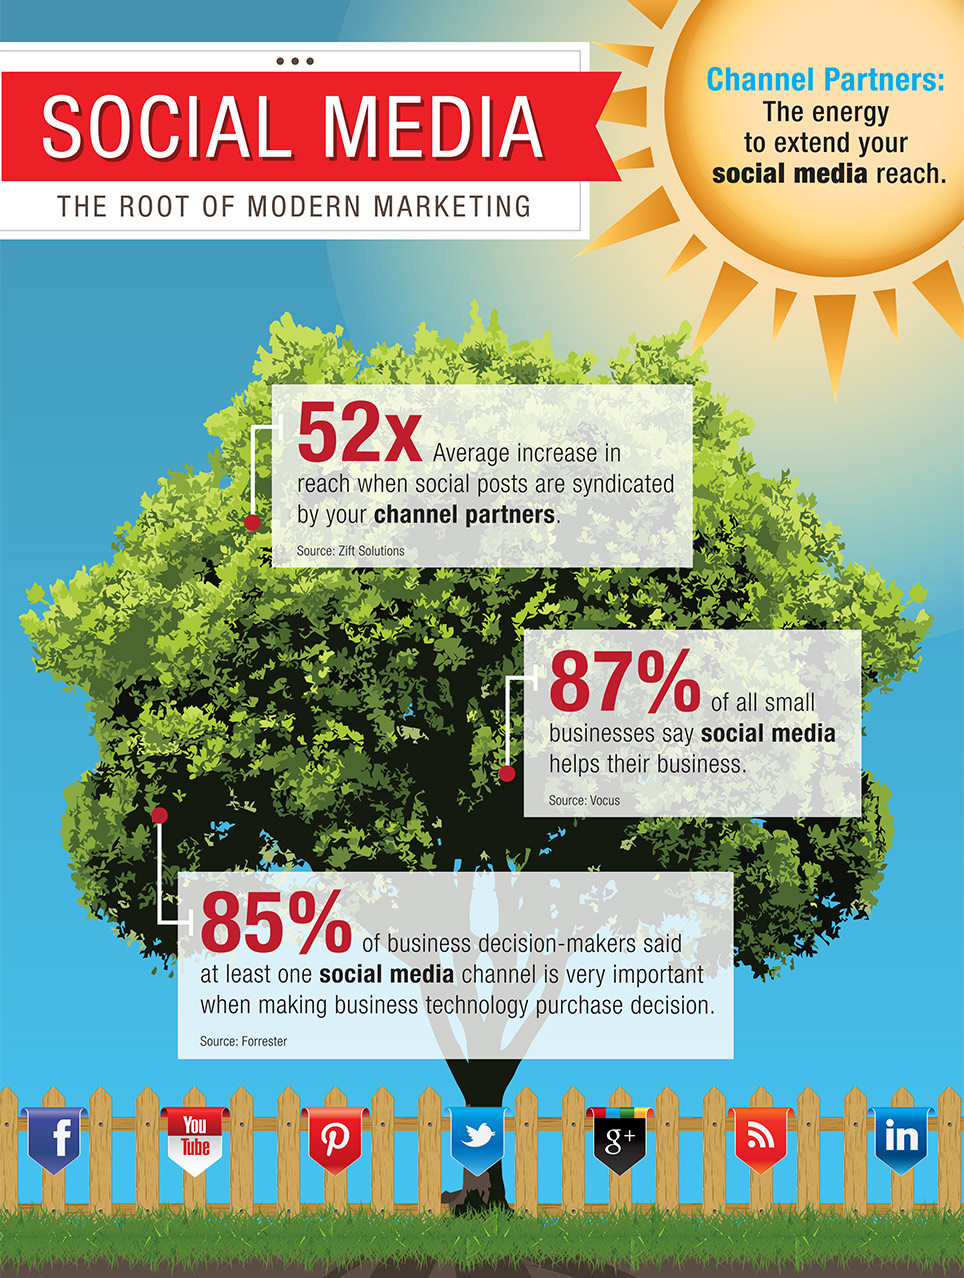 Social Media – The Root of Modern Marketing